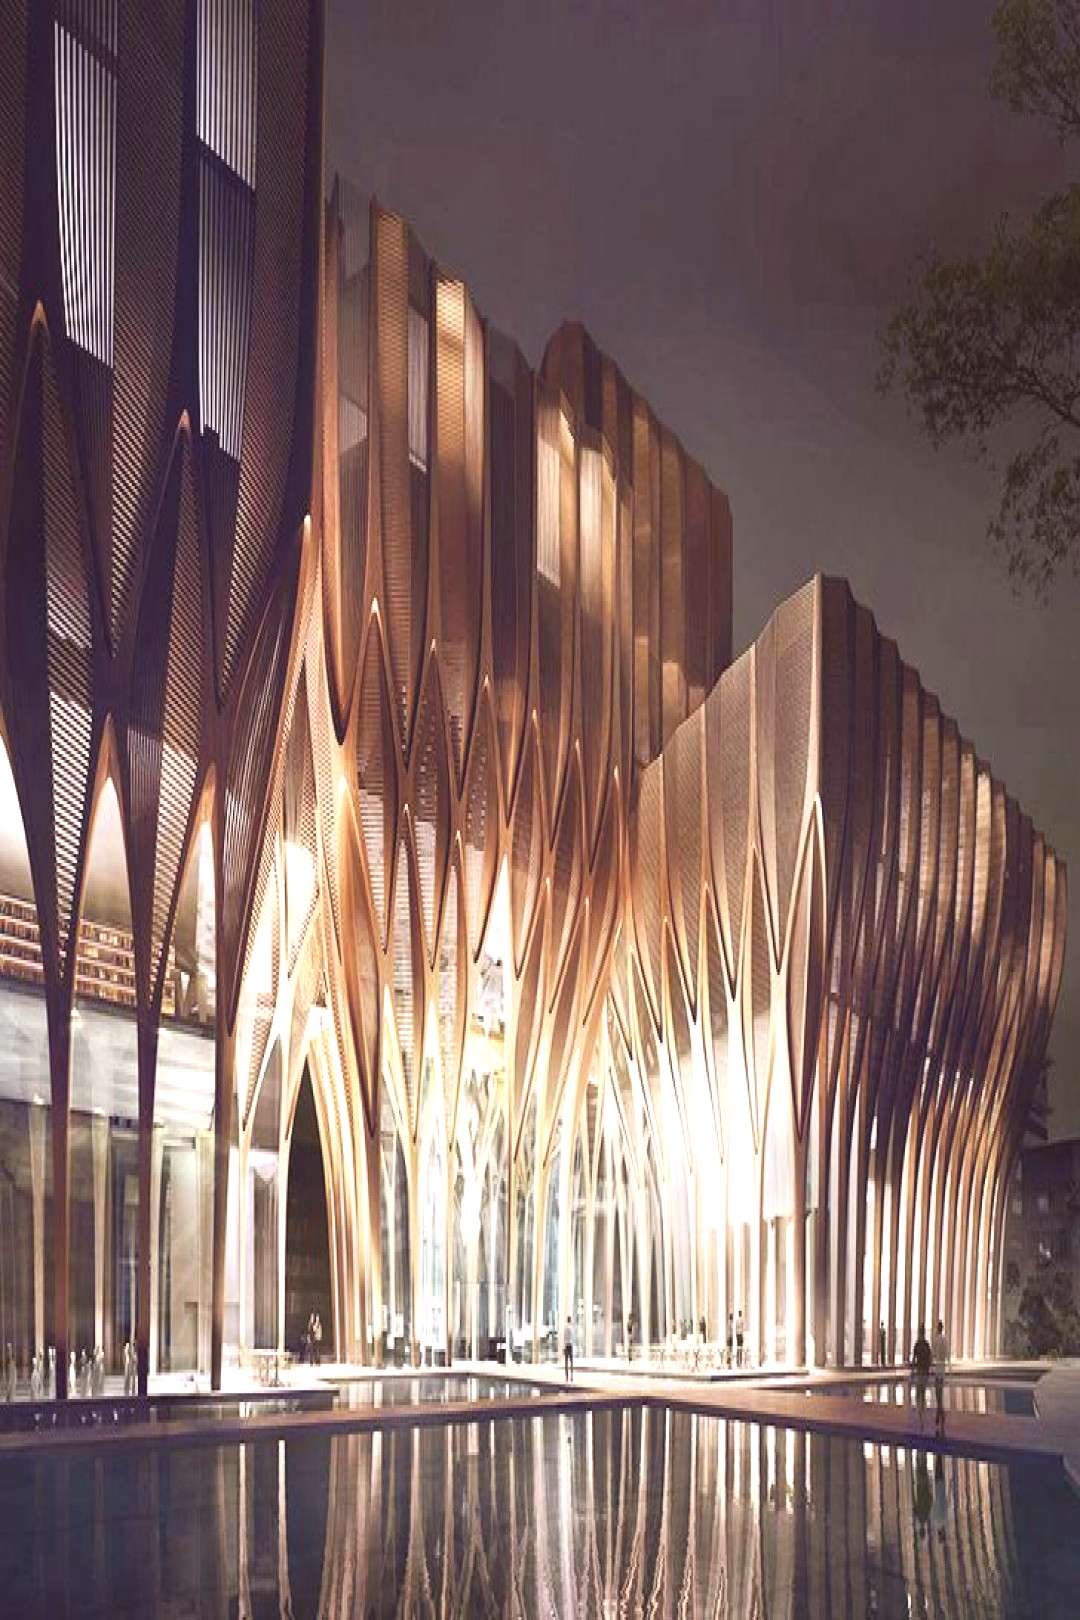 Zaha Hadids Sleuk Rith Institute Sprouts like a Forest in Cambodia - Zaha Hadid Architects unveil